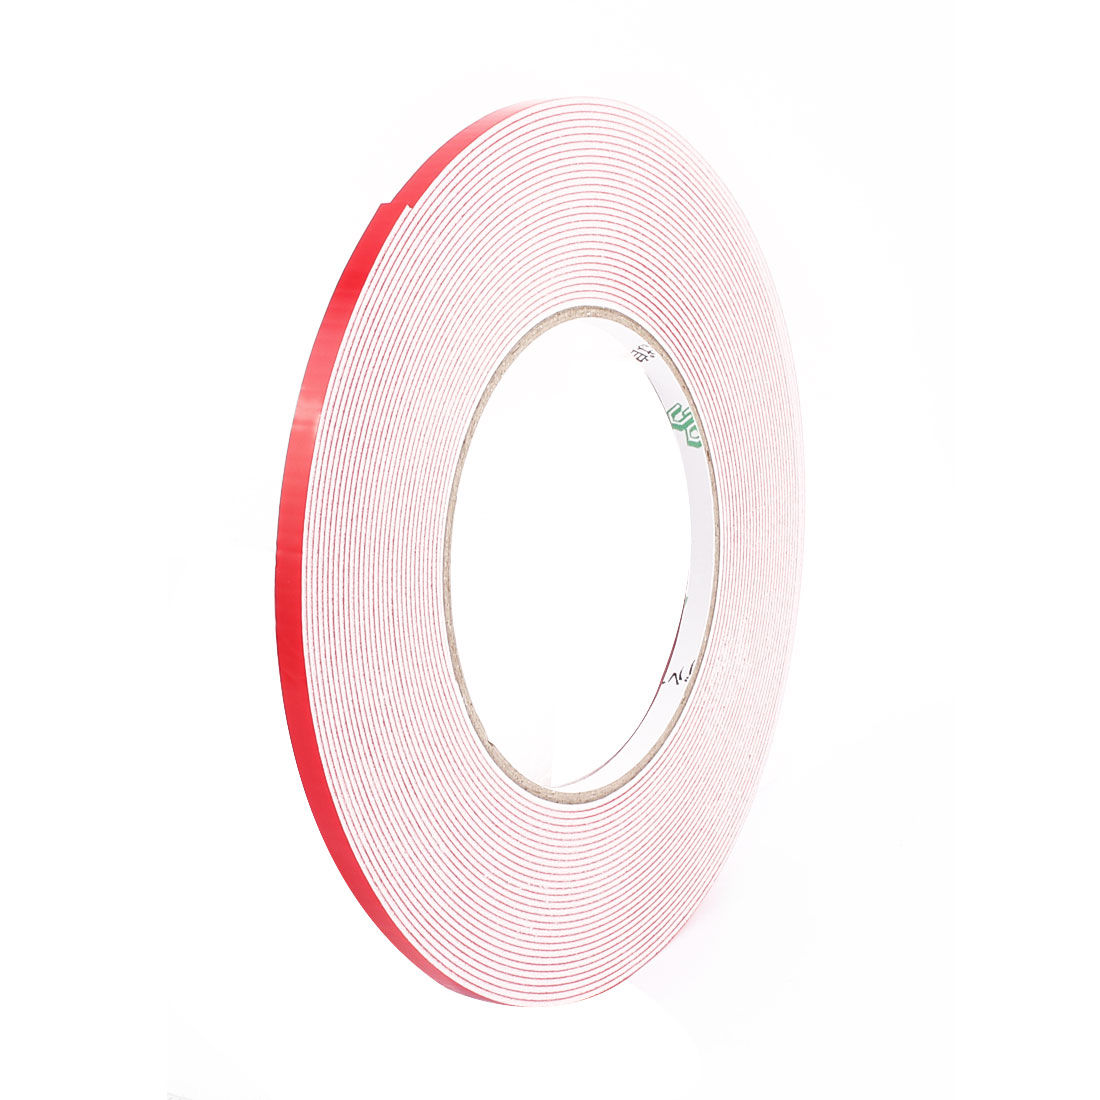 10PCS 0.5CM Width 10M Long 1MM Thick White Dual Sided Waterproof Sponge Tape for Car